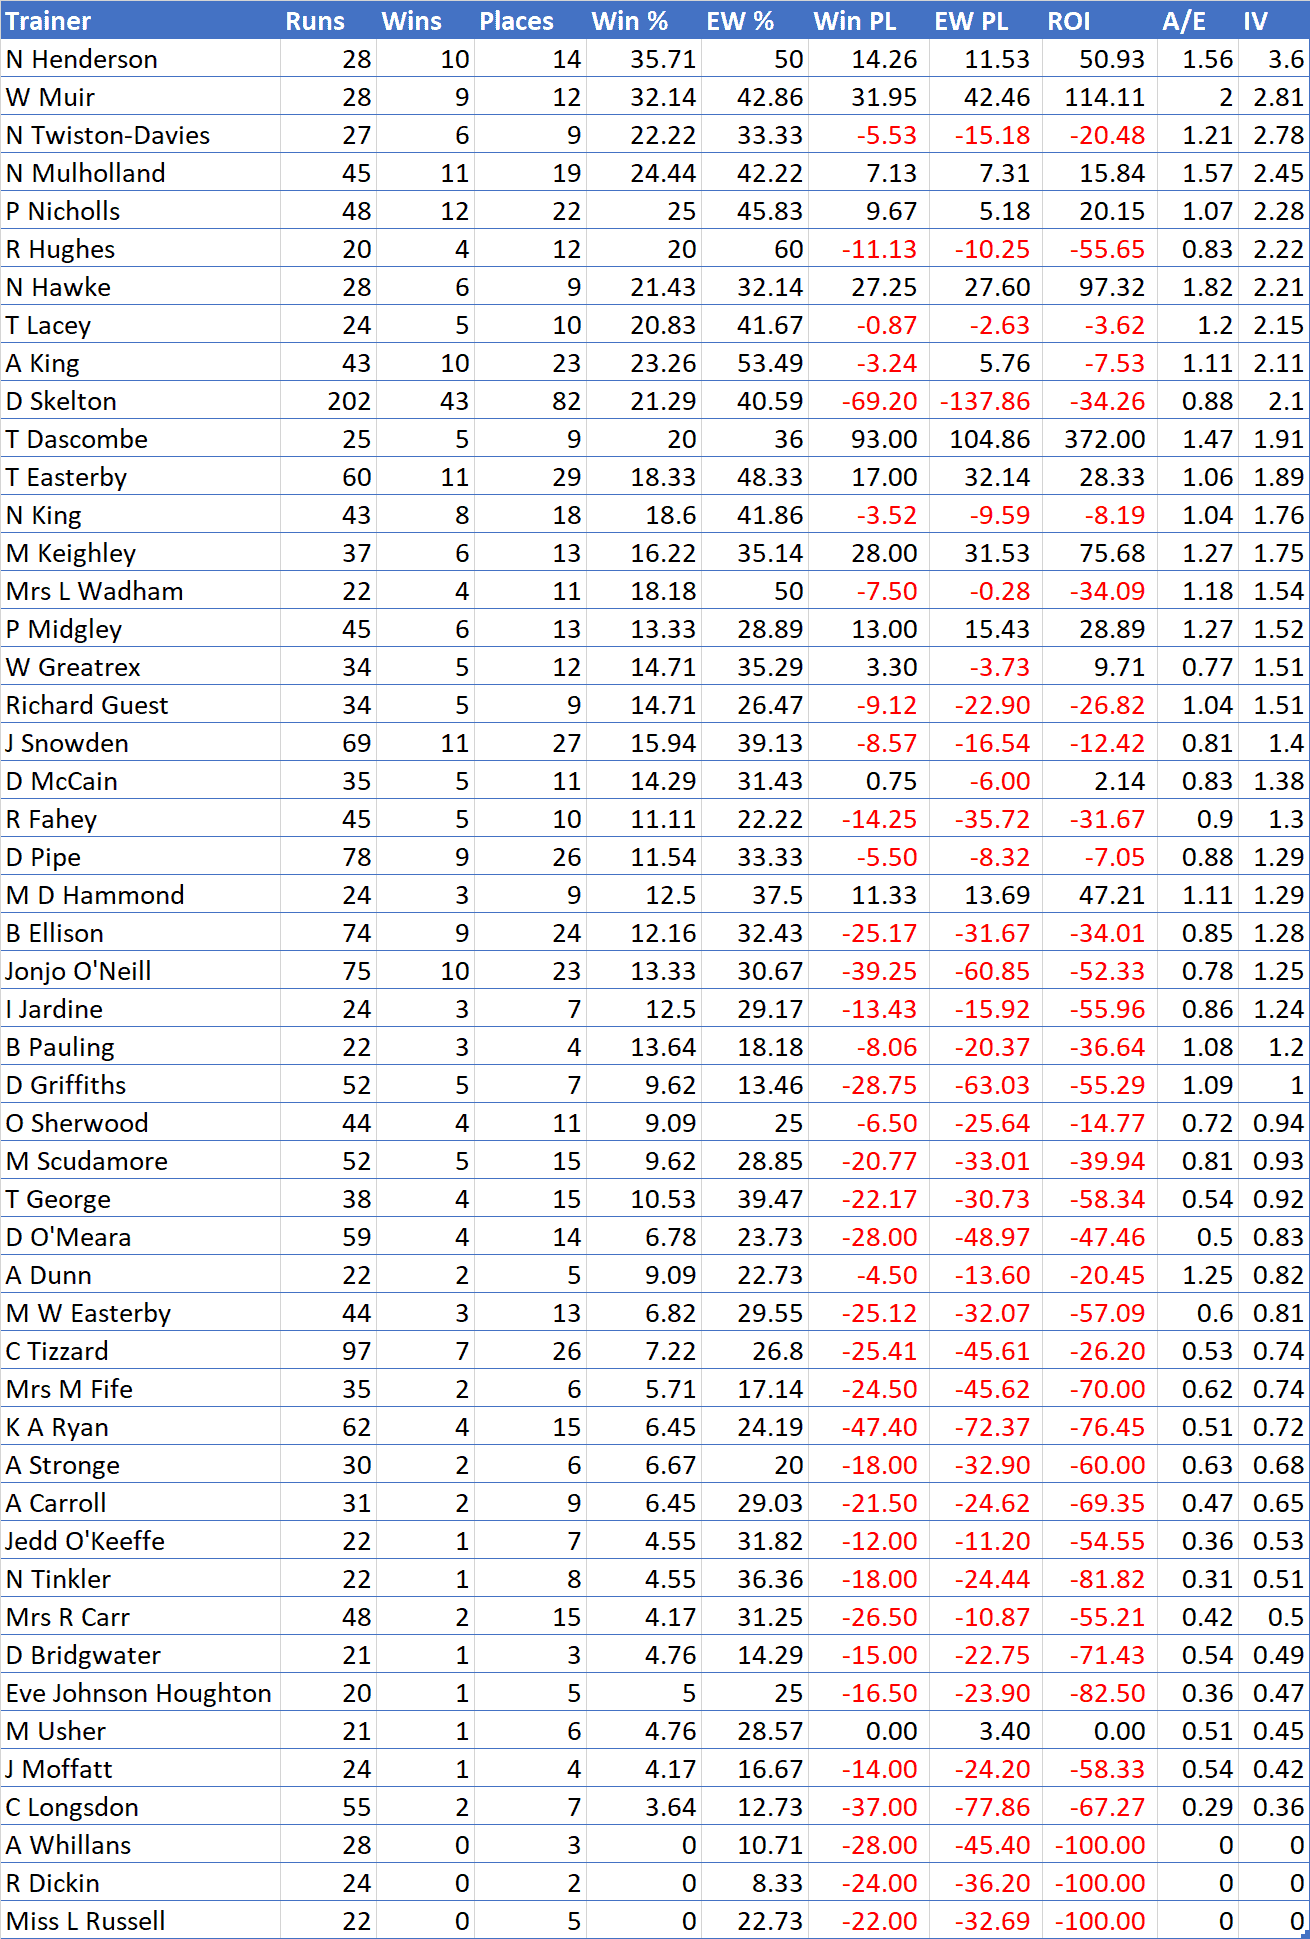 W+ performance by trainer, 20+ runs, sorted by Impact Value